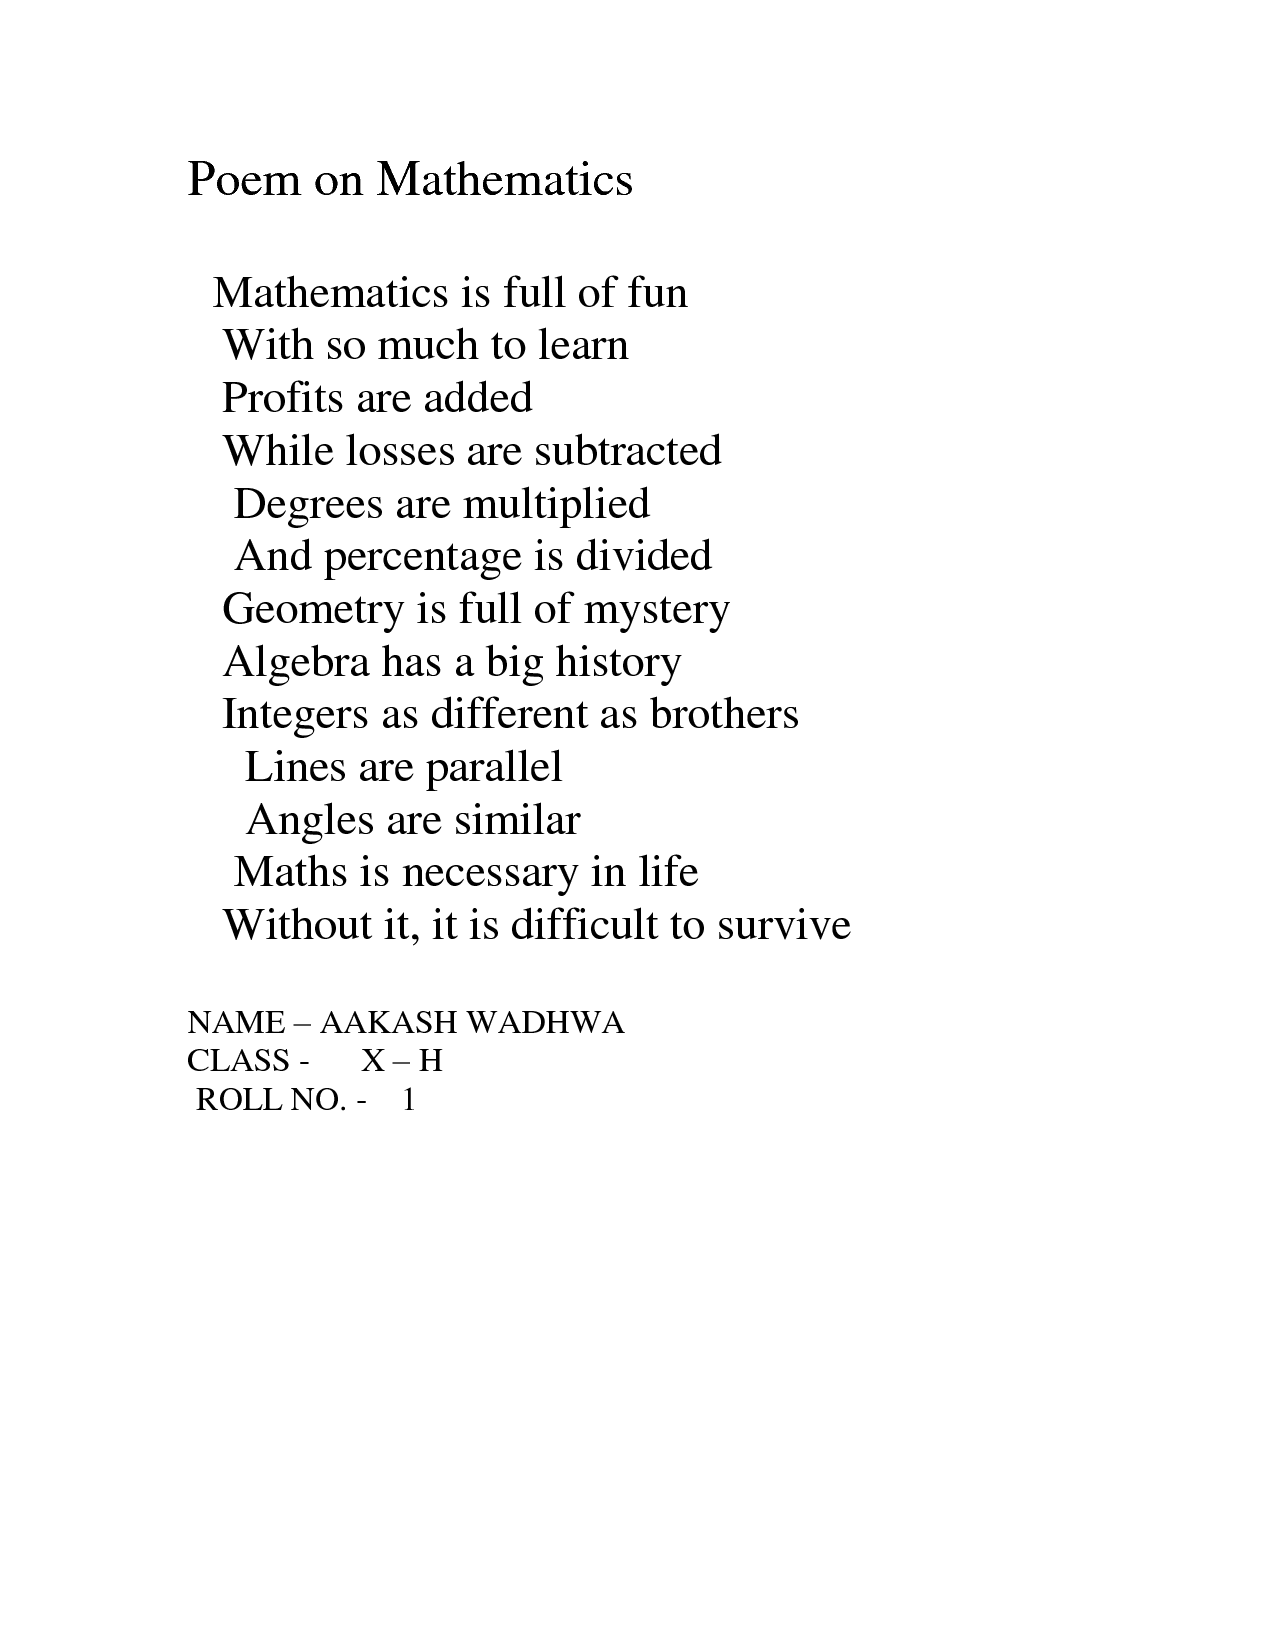 Math Poems With Math Terms Poems About Math Algebra